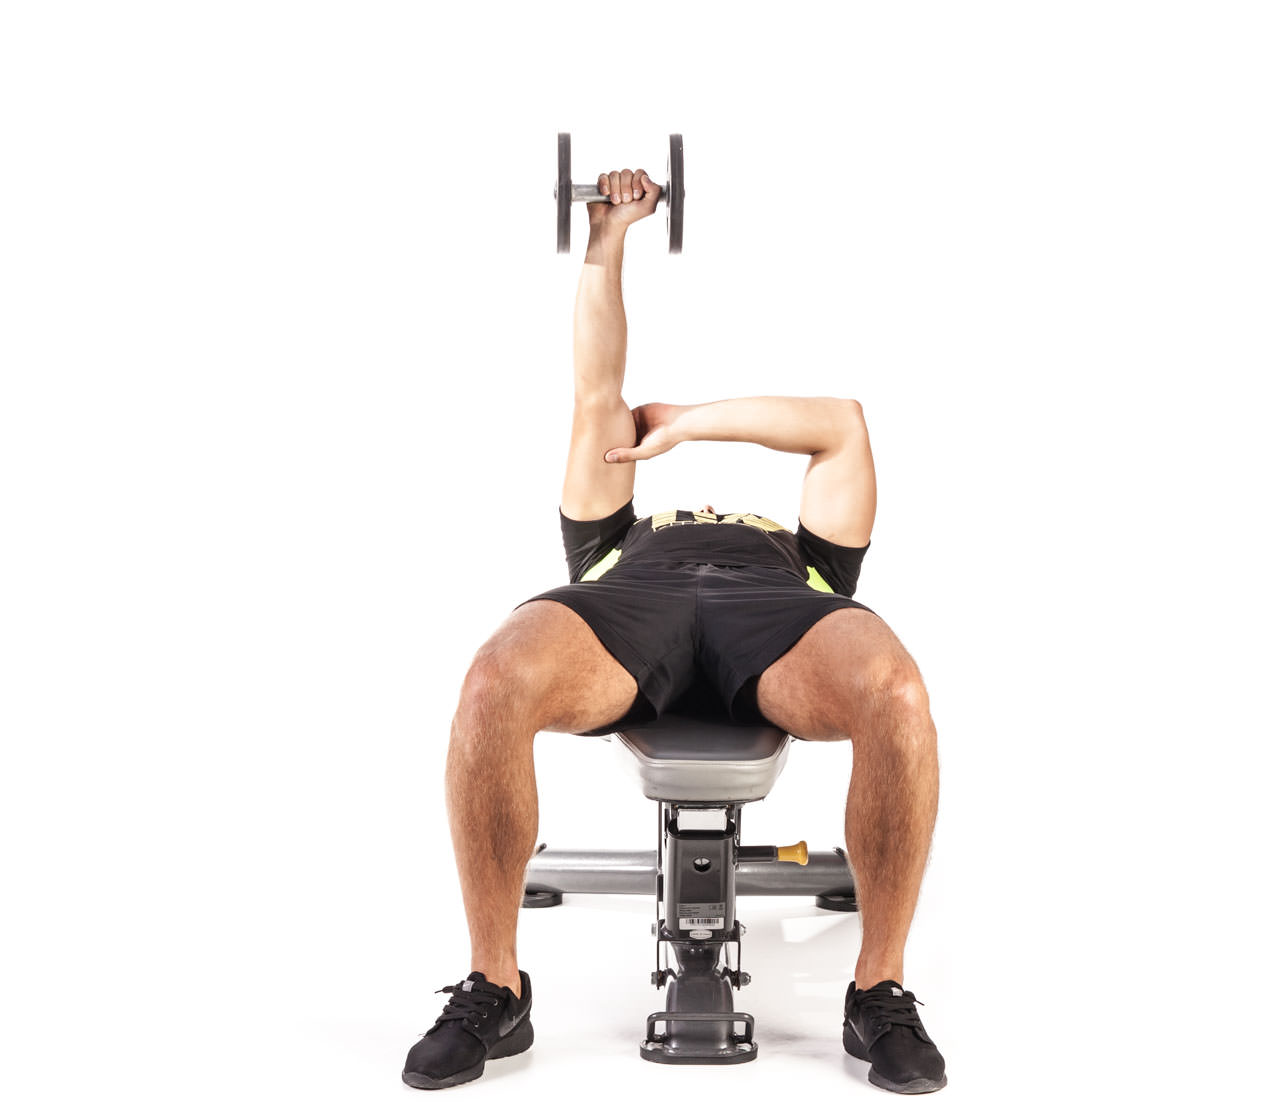 One-Arm Dumbbell Triceps Extension frame #3